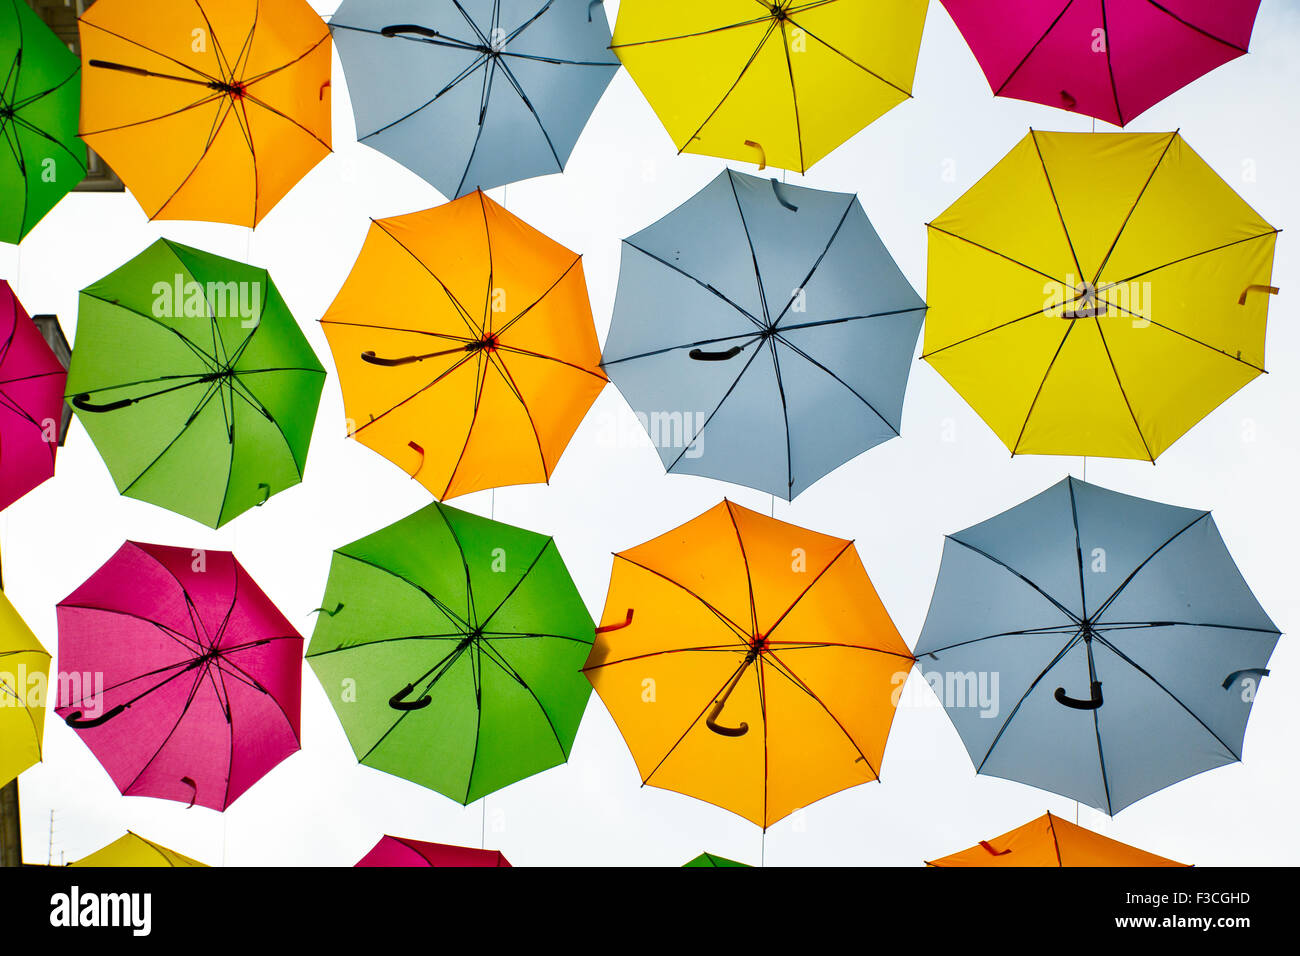 Umbrellas forming a canopy above a street in Saumur, France. - Stock Image